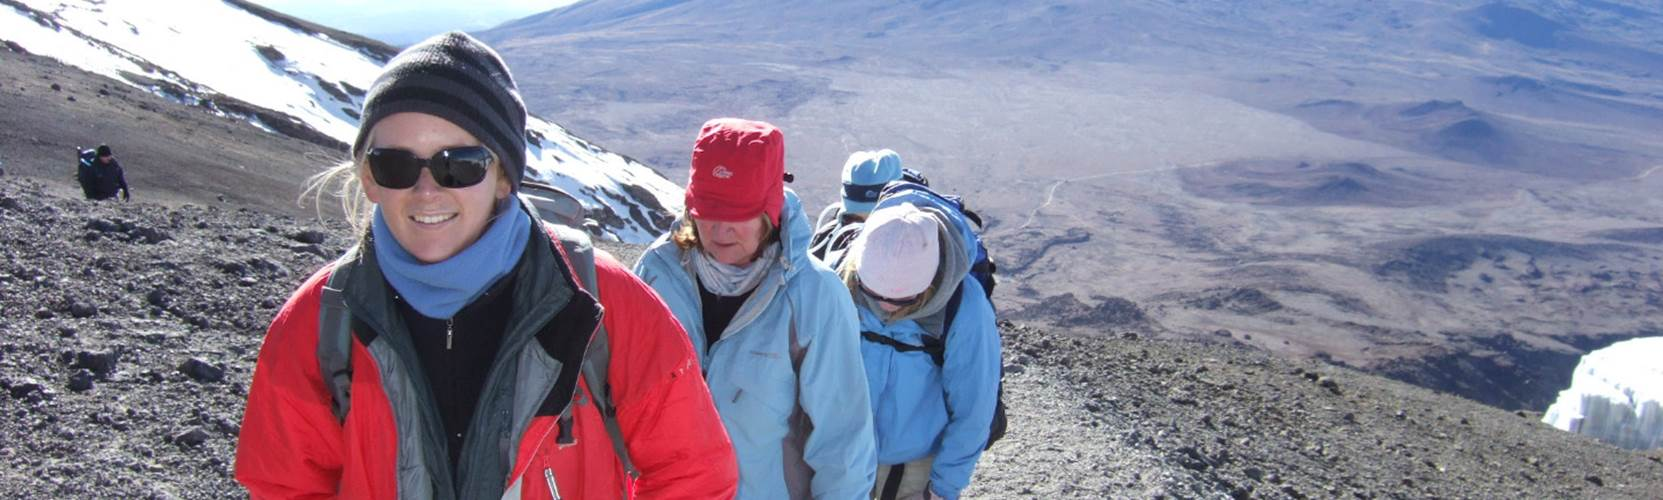 Mount Kilimanjaro - approaching the summit